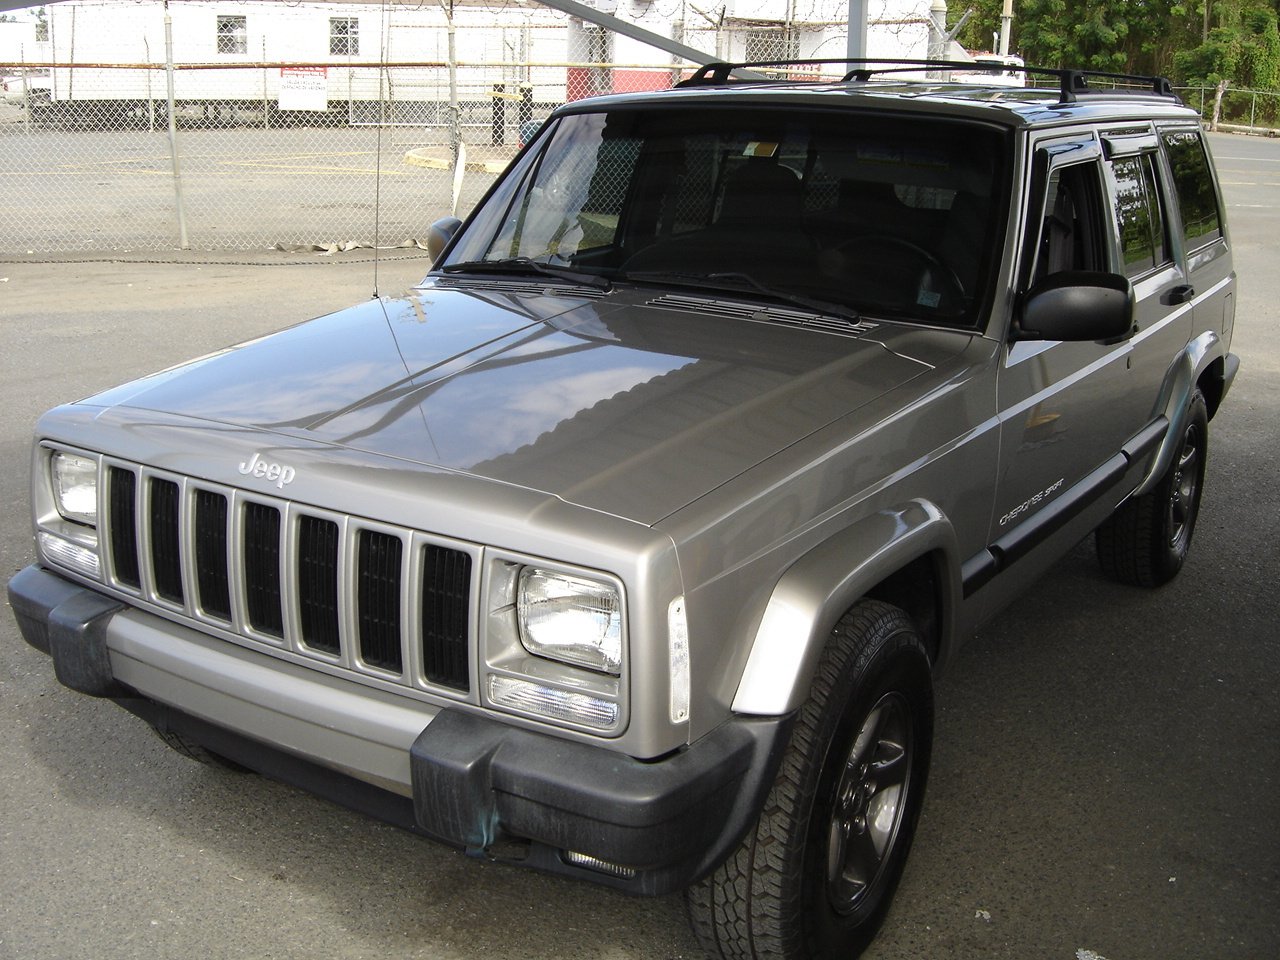 1993 Jeep Cherokee - Overview - CarGurus